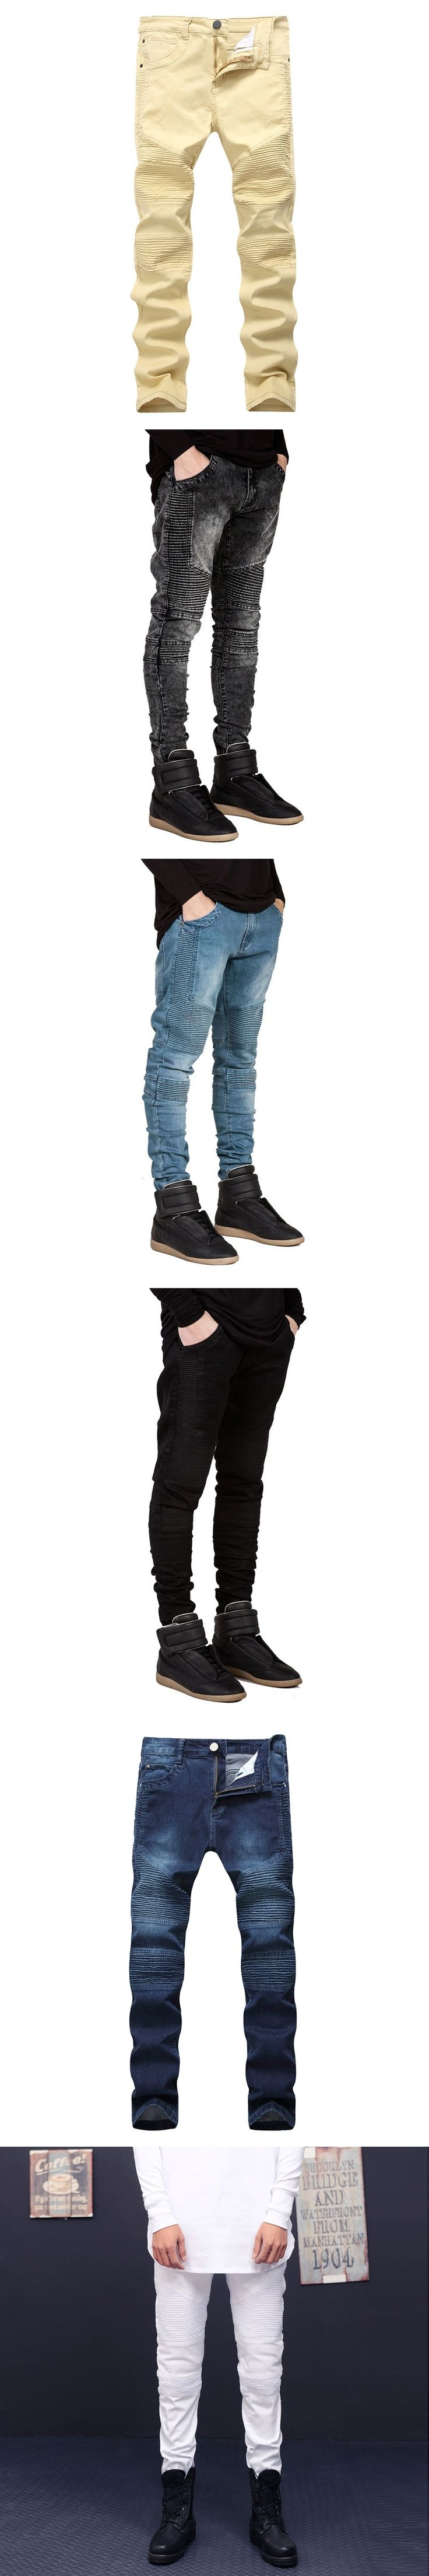 New Dropshipping Biker Jeans Men High Stretch Cargo Denim Jeans Pleated Slim Jean Men's Scratched Pants Trousers